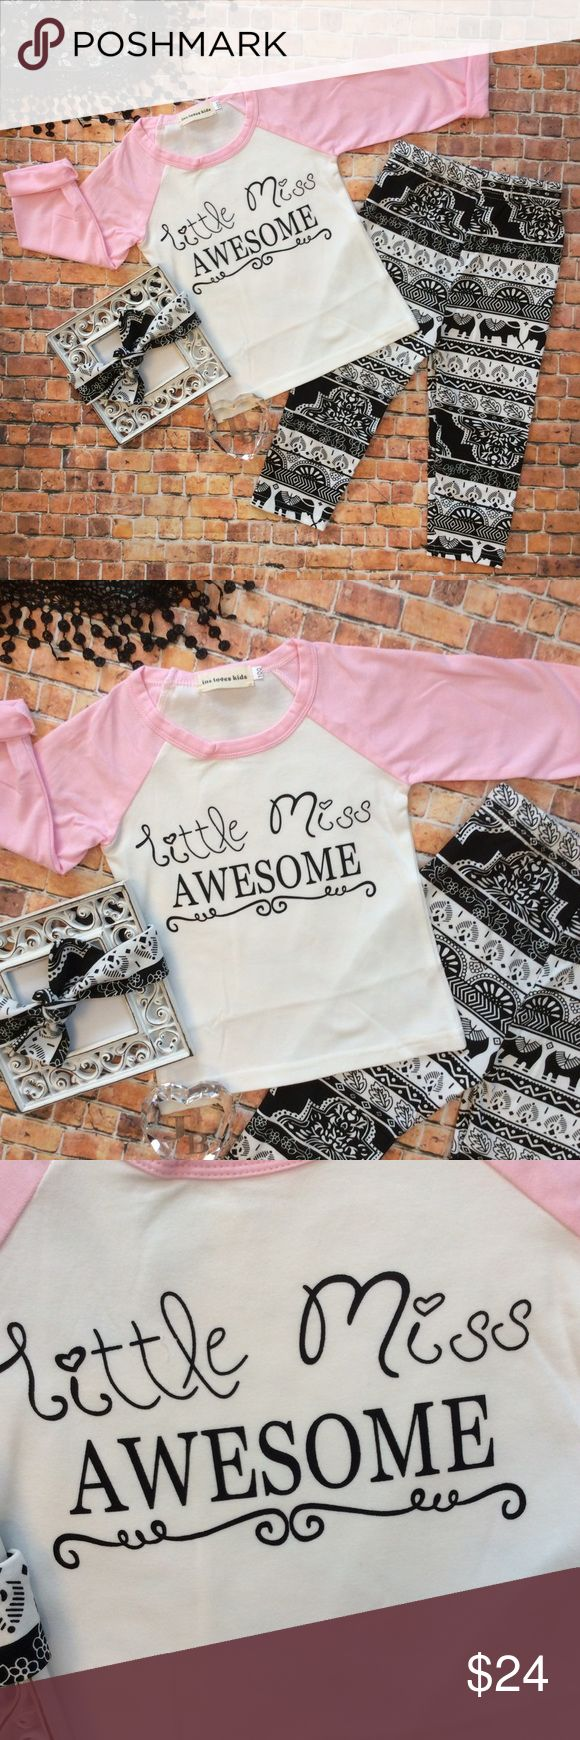 Boutique Girls 3pc LITTLE MISS AWESOME Set Precious pink & white long sleeve Raglan top with LITTLE MISS AWESOME design to front, African inspired design black & white pants & knot bow headband. Matching Sets